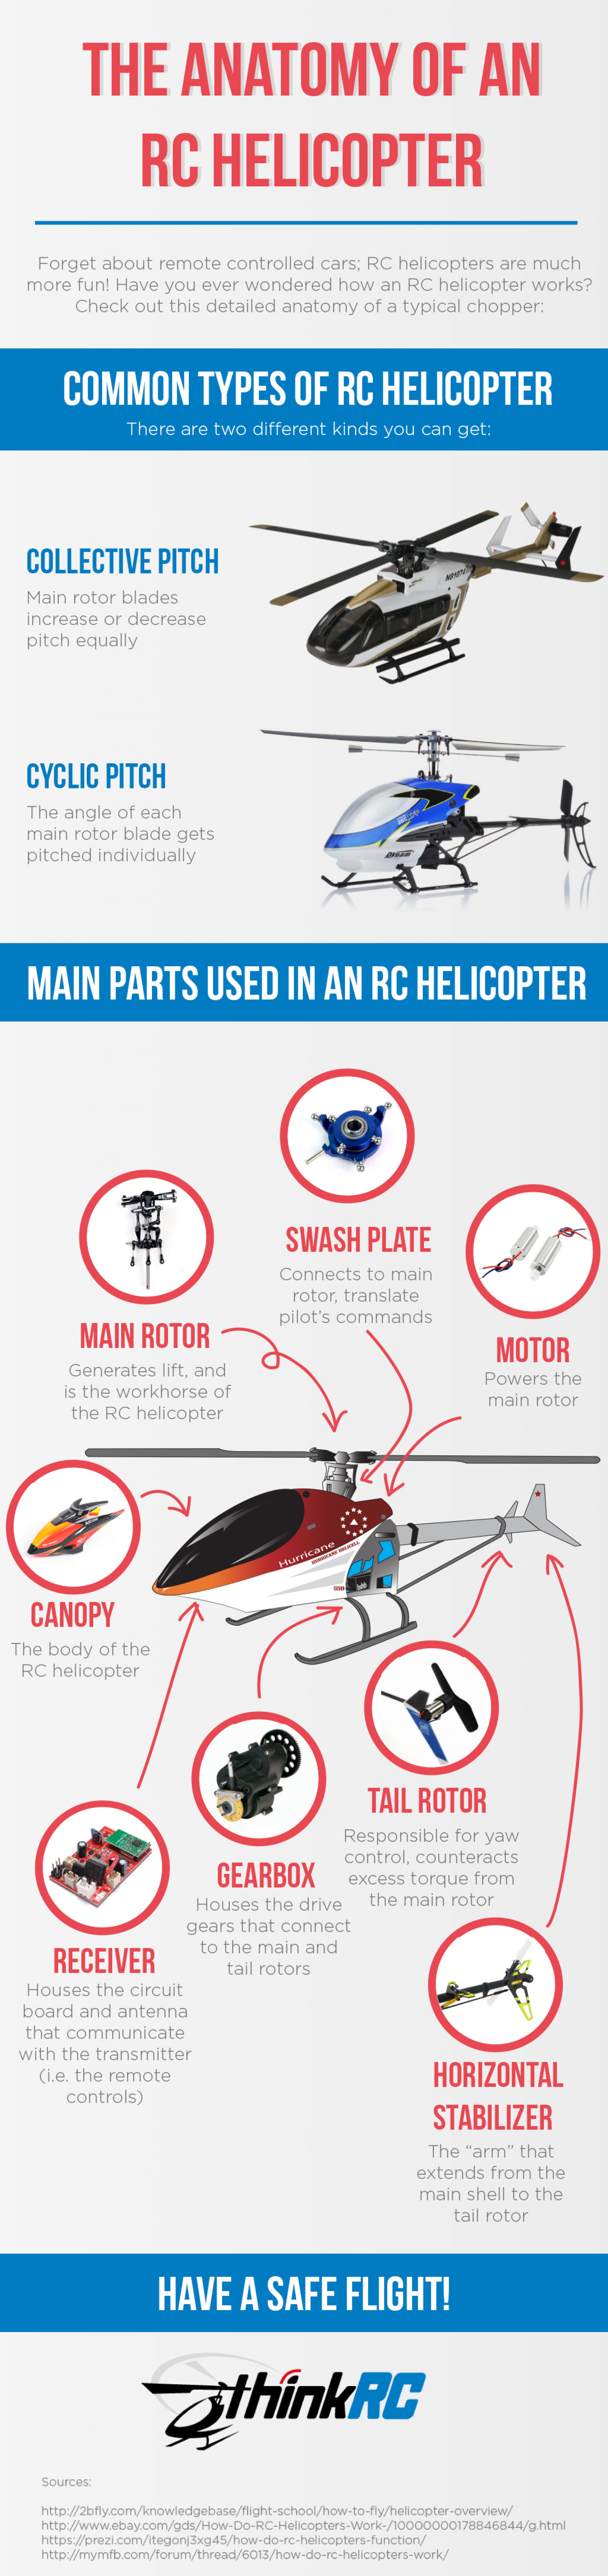 The Anatomy of an RC Helicopter | Visual.ly